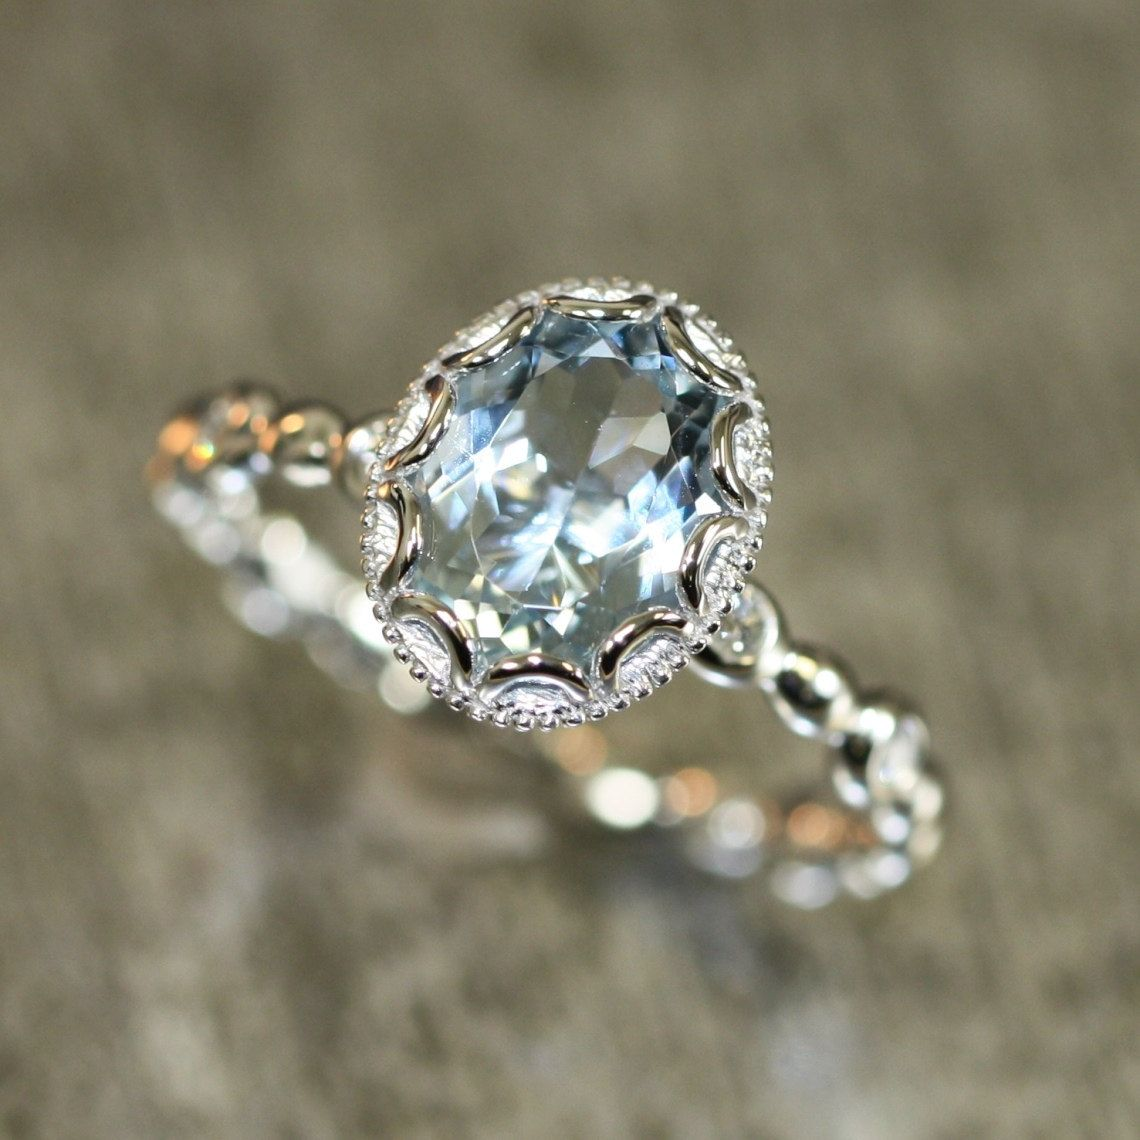 vintage wedding ring sets Floral Aquamarine Engagement Ring in 14k White Gold Pebble Diamond Wedding Band mm Oval Aquamarine Ring March Birthstone Gemstone Ring